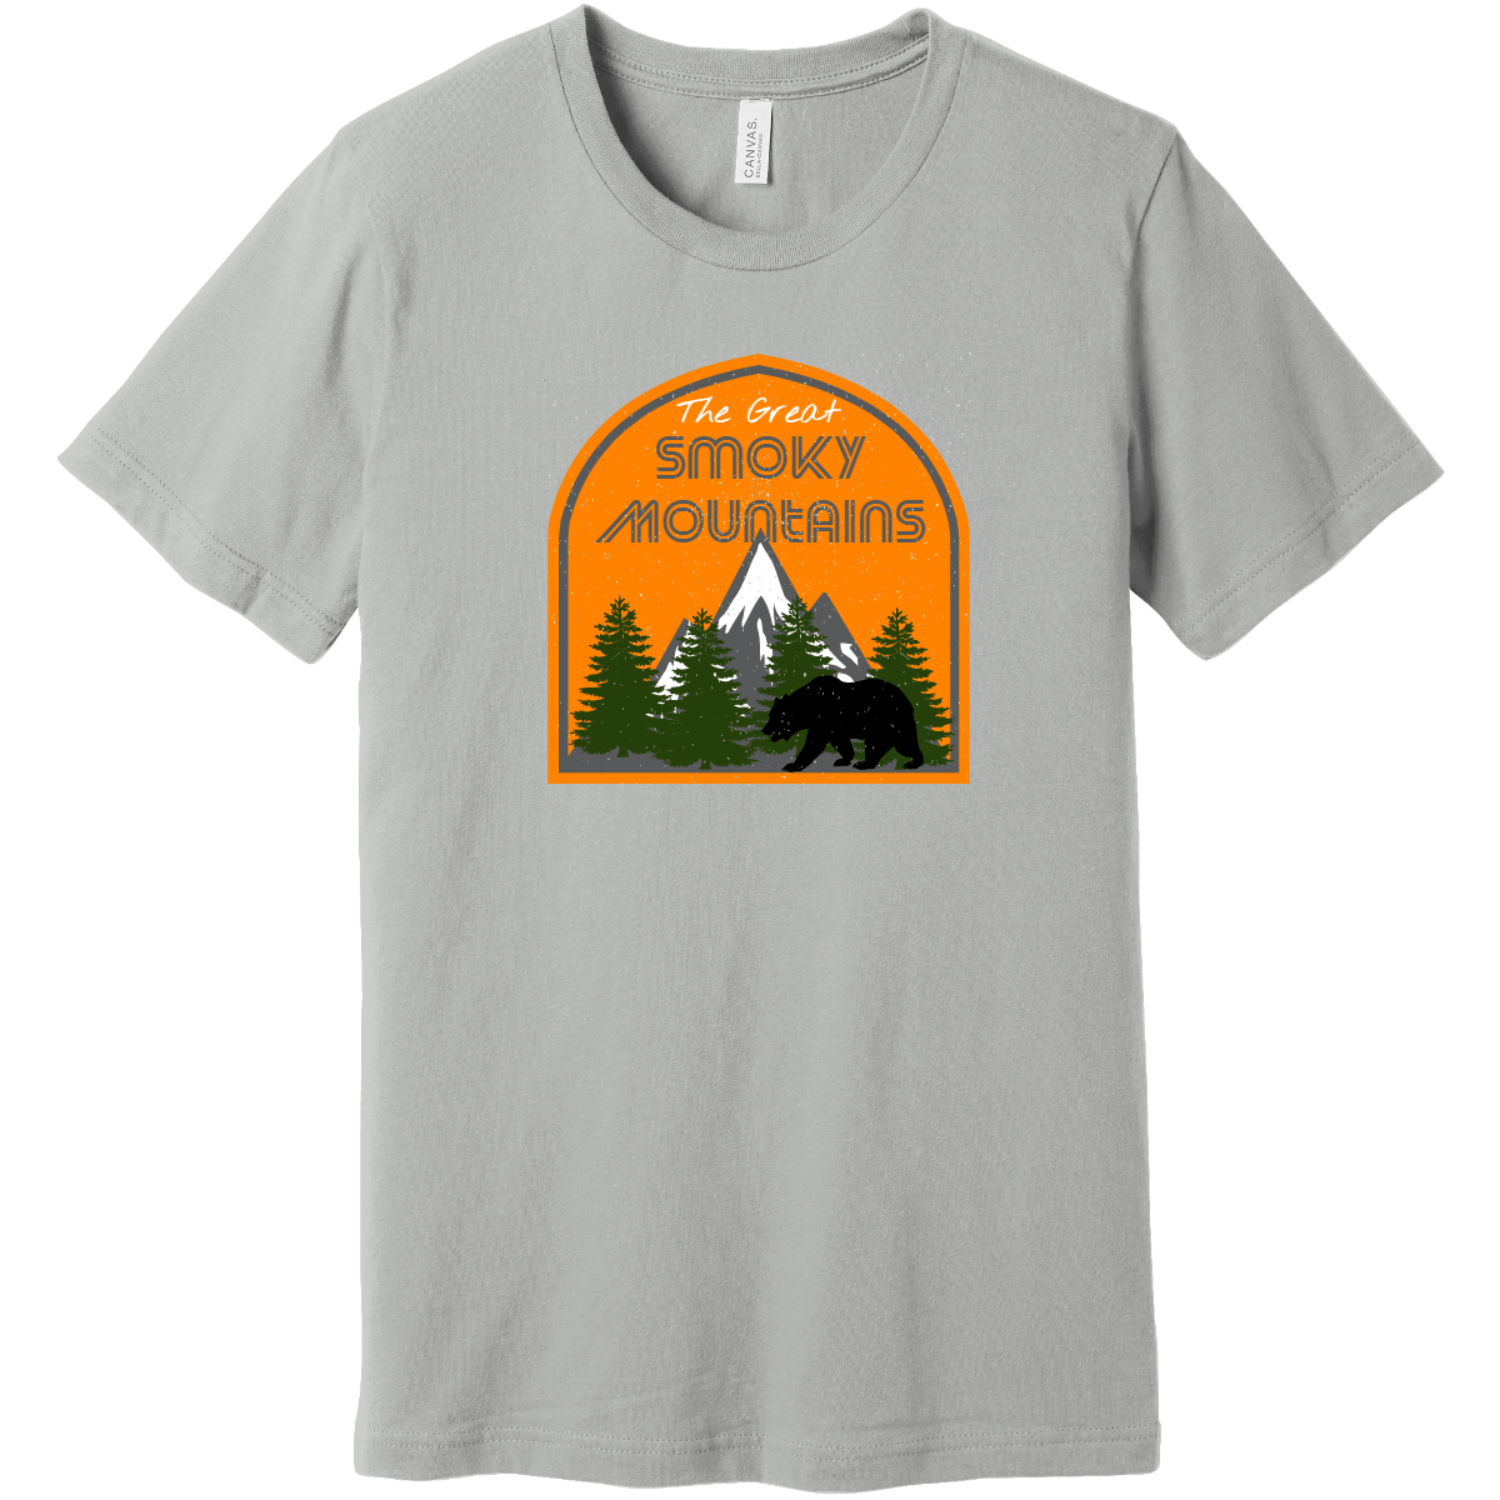 The Great Smoky Mountains T-Shirt Silver Bella Canvas Unisex Tee BC3001